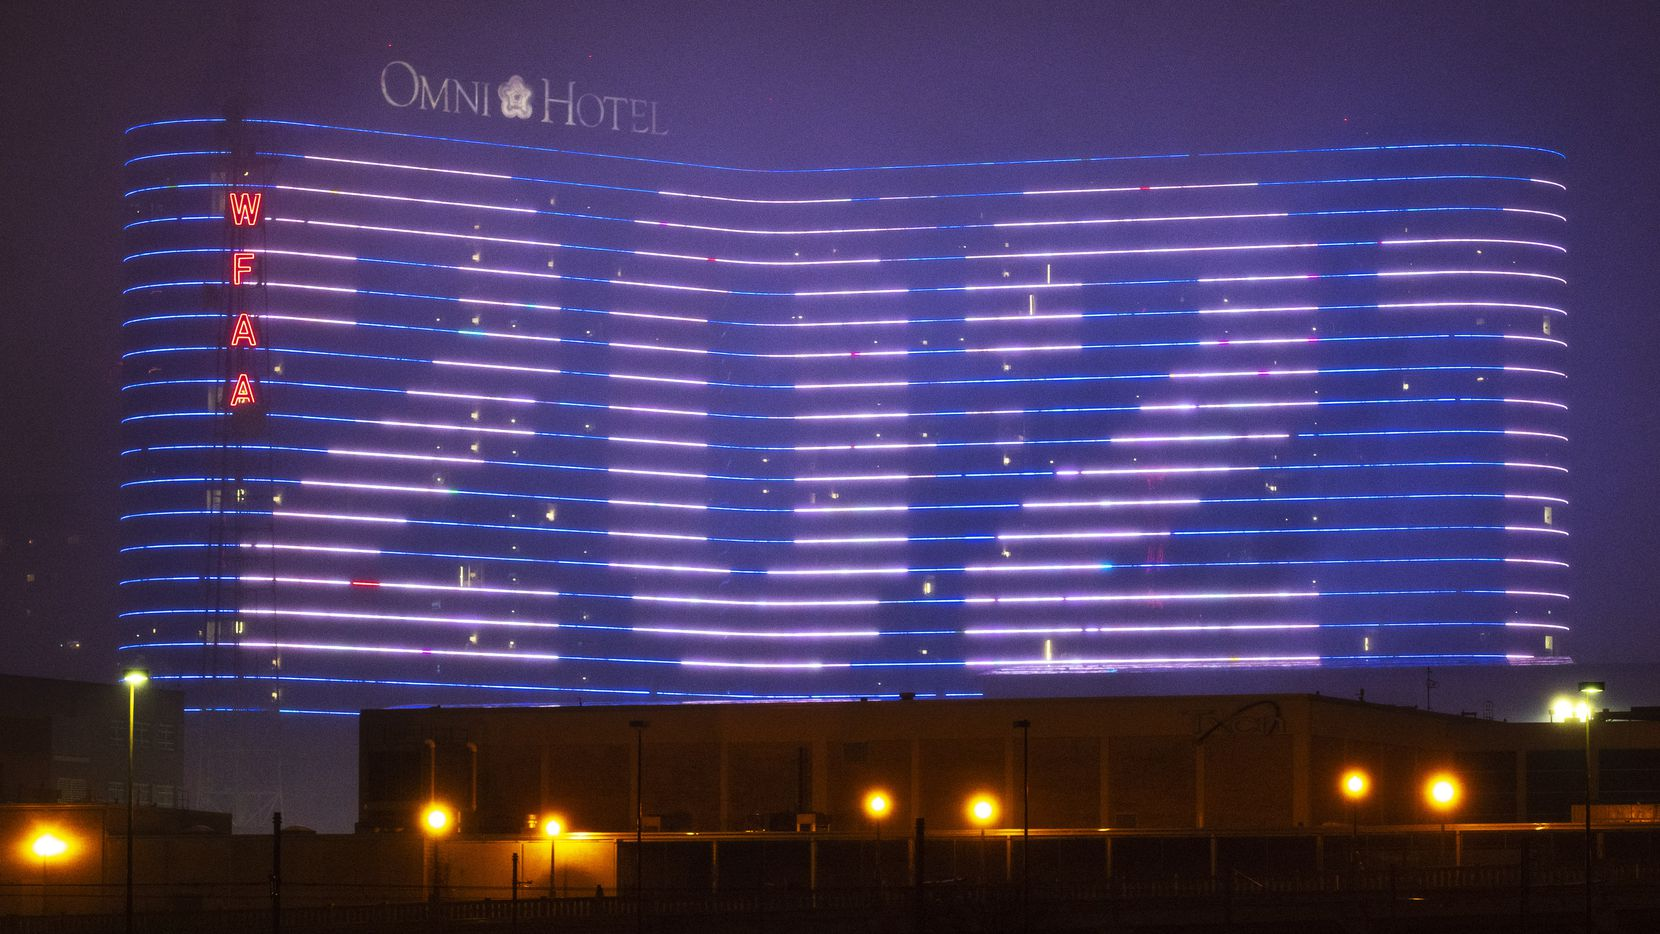 Through a light drizzle of rain and fog, Happy New Year 2021 was displayed on the electronic wall of the Omni Hotel in downtown Dallas after midnight Jan. 1. Hotels and other businesses in the leisure and hospitality industry have been hit harder than others by the pandemic.